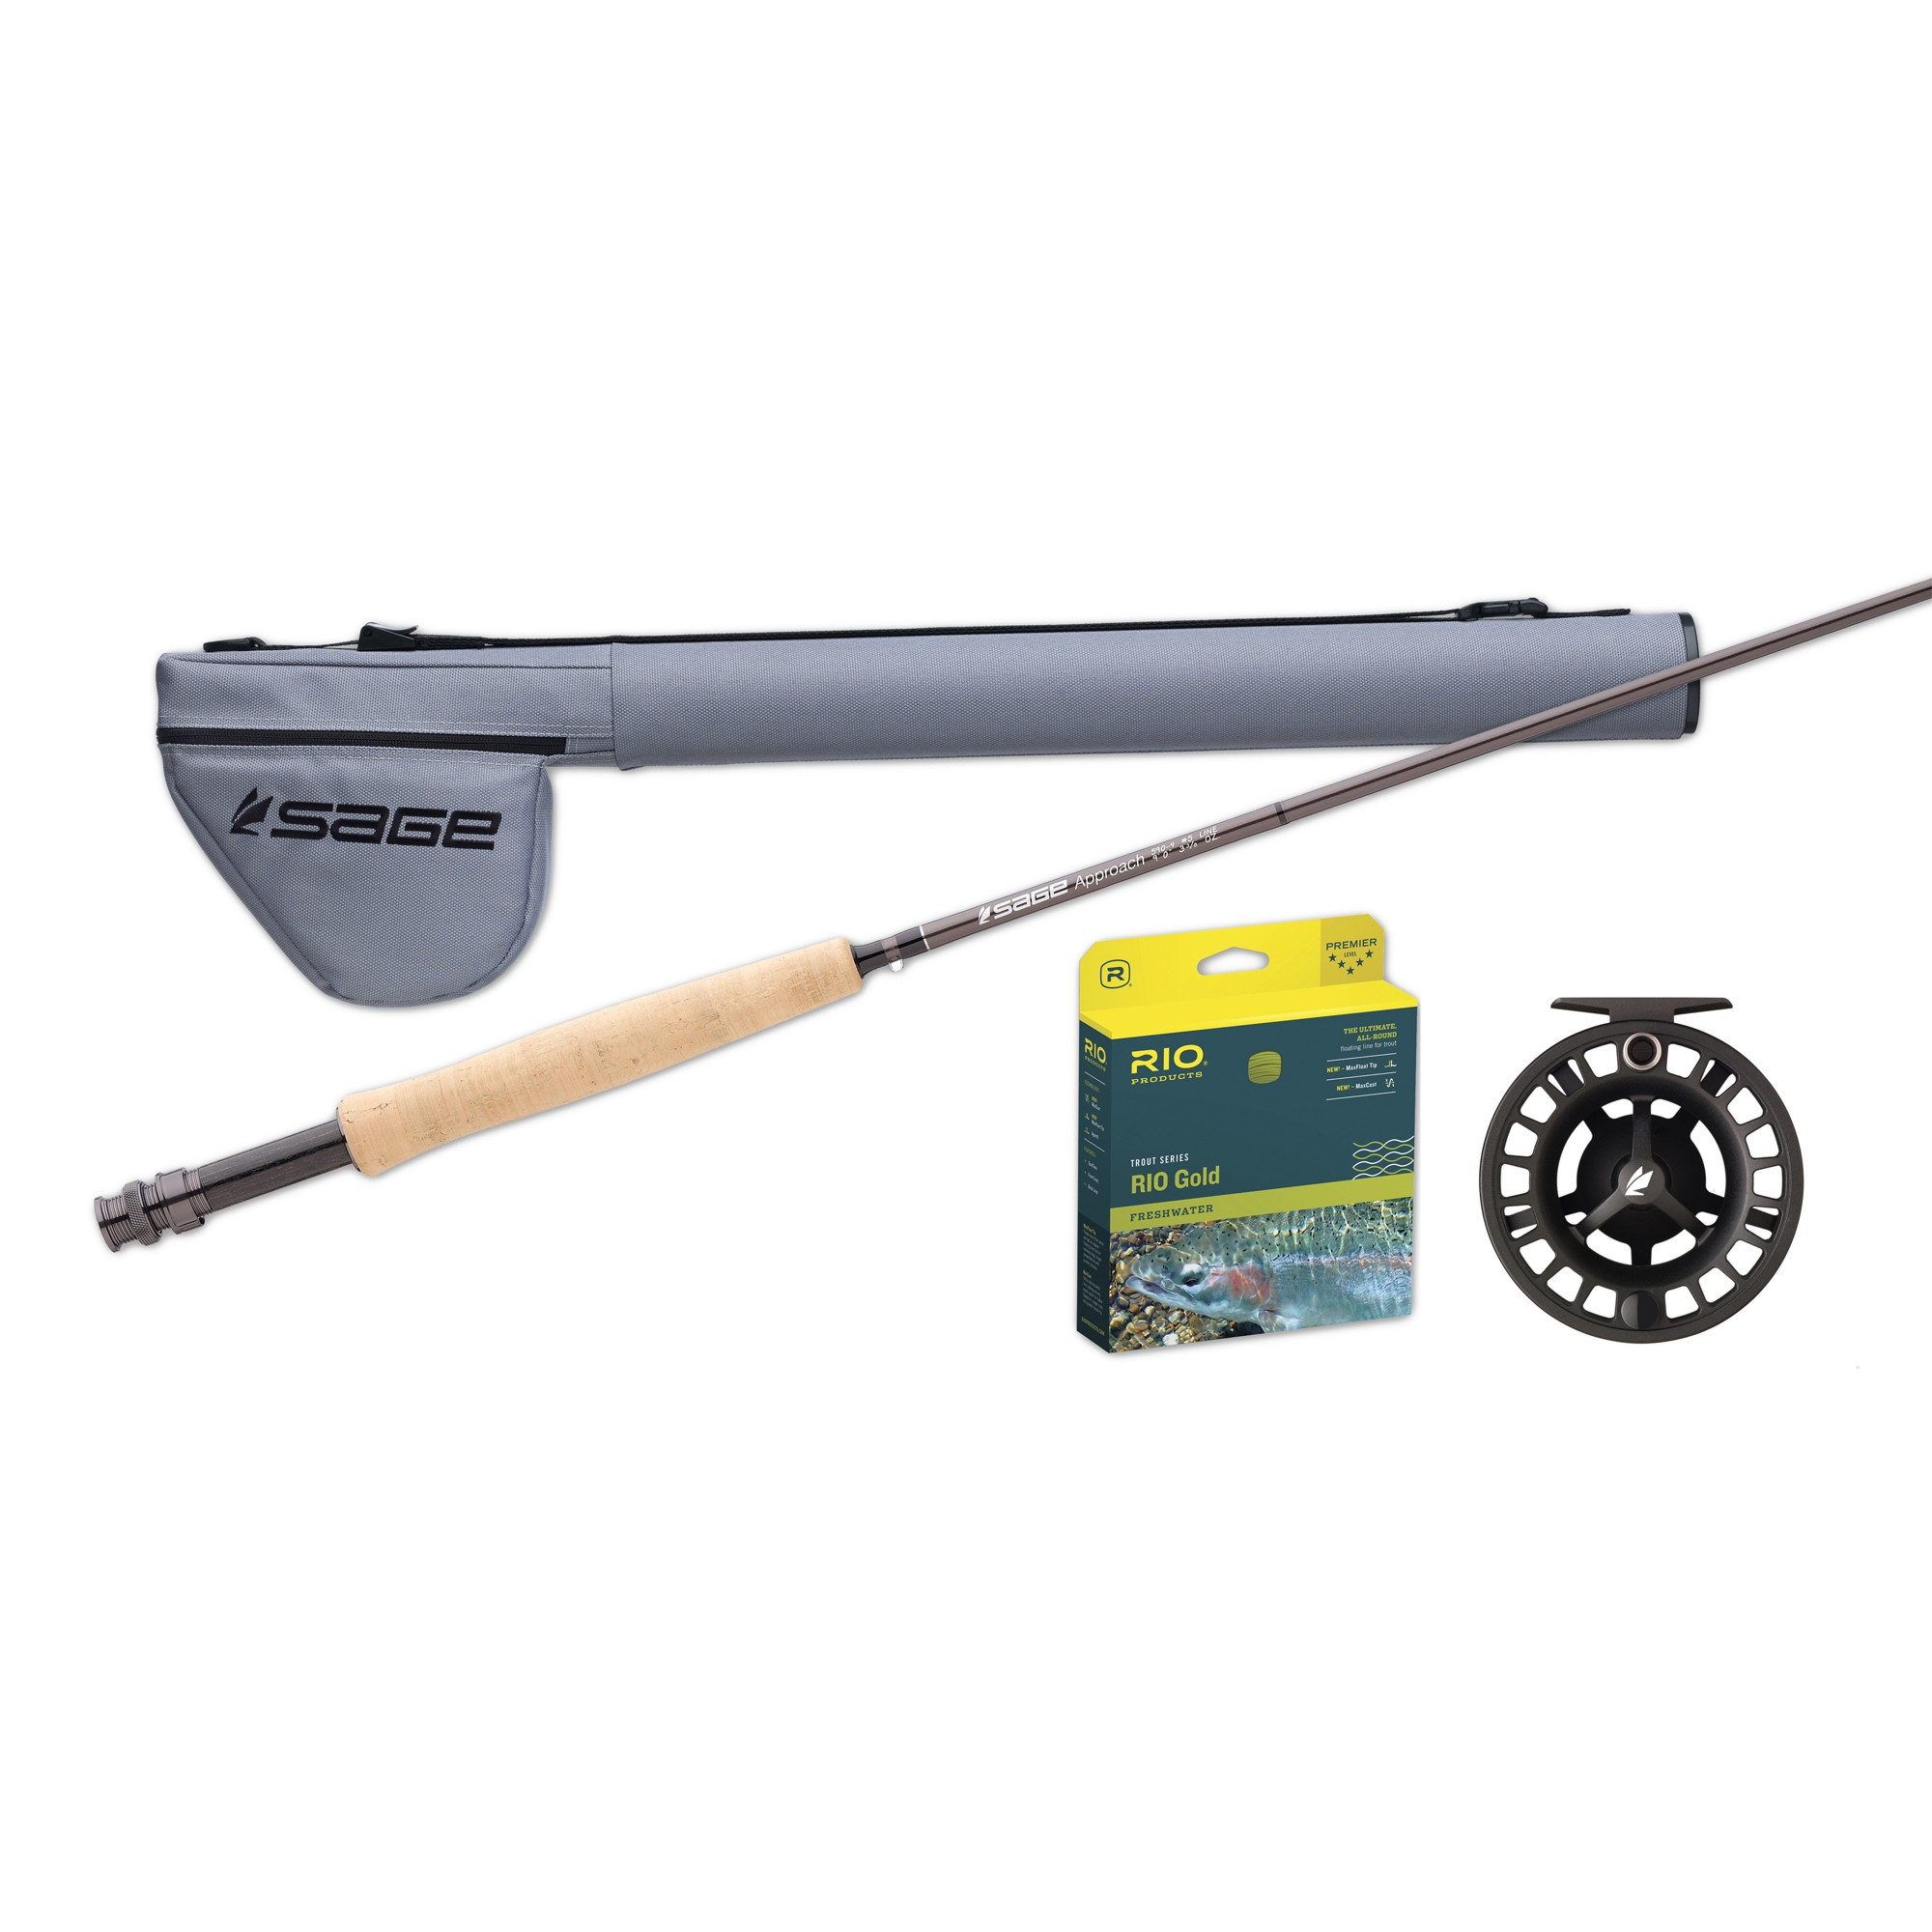 Fly fishing gear waders boots canada online best price for Fly fishing combos